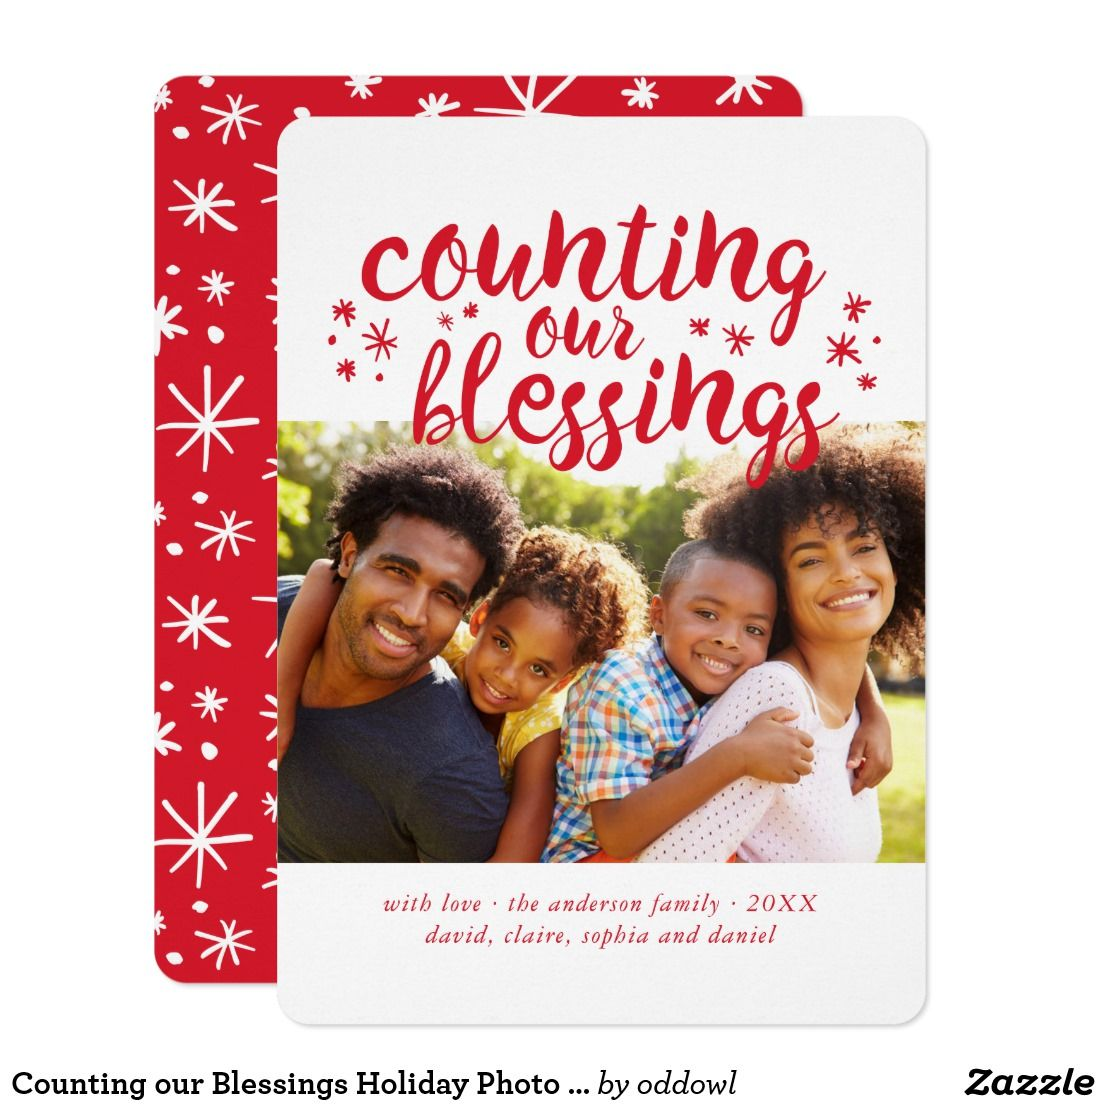 Counting Our Blessings Holiday Photo Card Zazzle Com Family Holiday Photo Cards Photo Cards Holiday Design Card